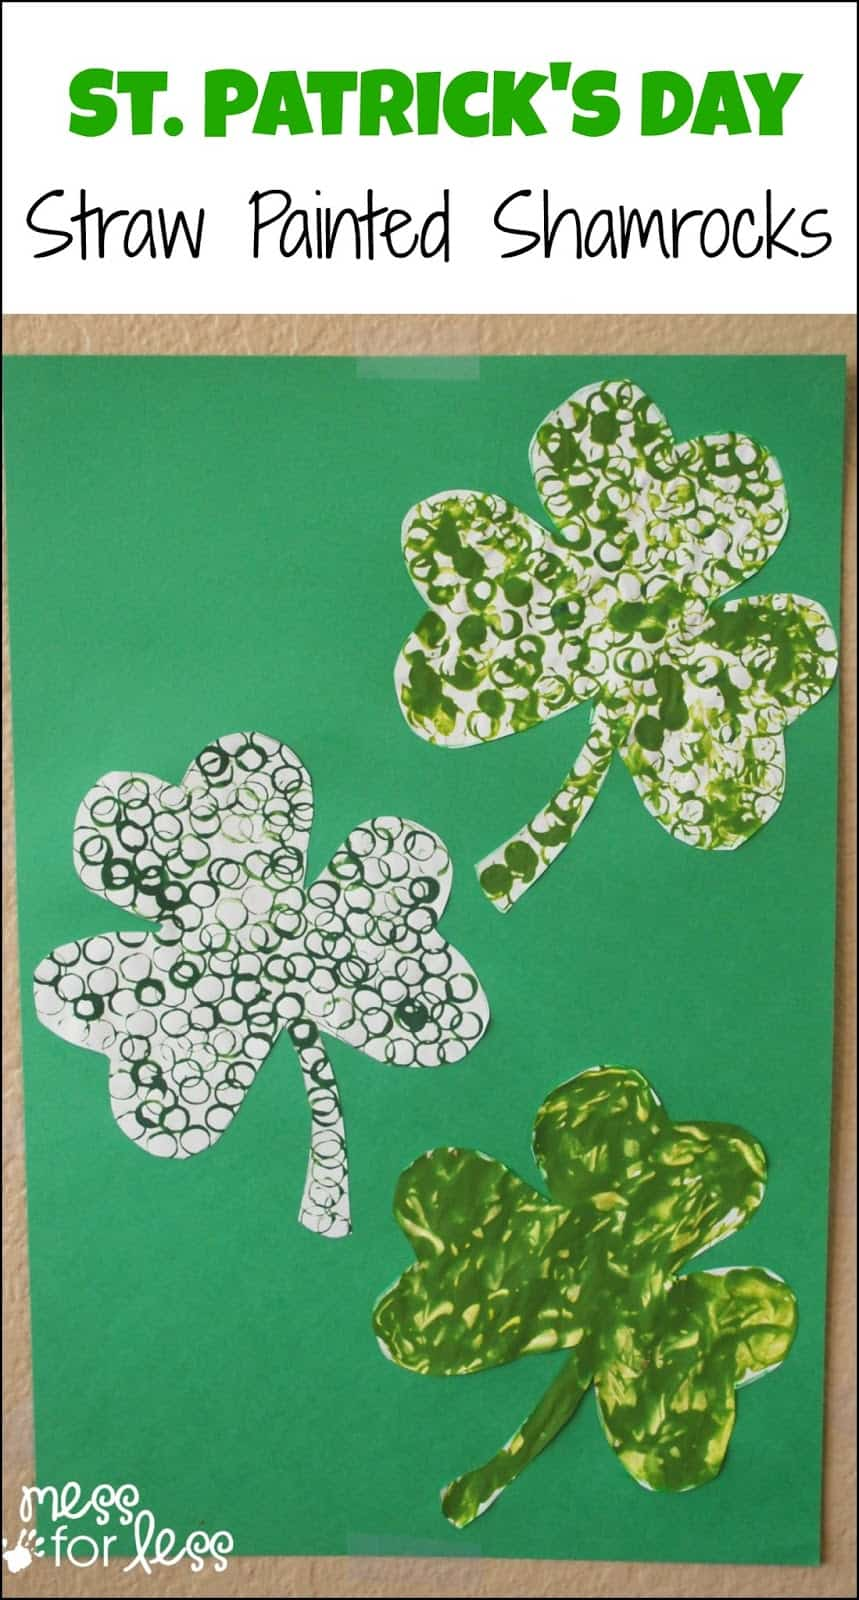 St. Patrick's Day Straw Art Activity - Decorate shamrock by stamping with a straw.